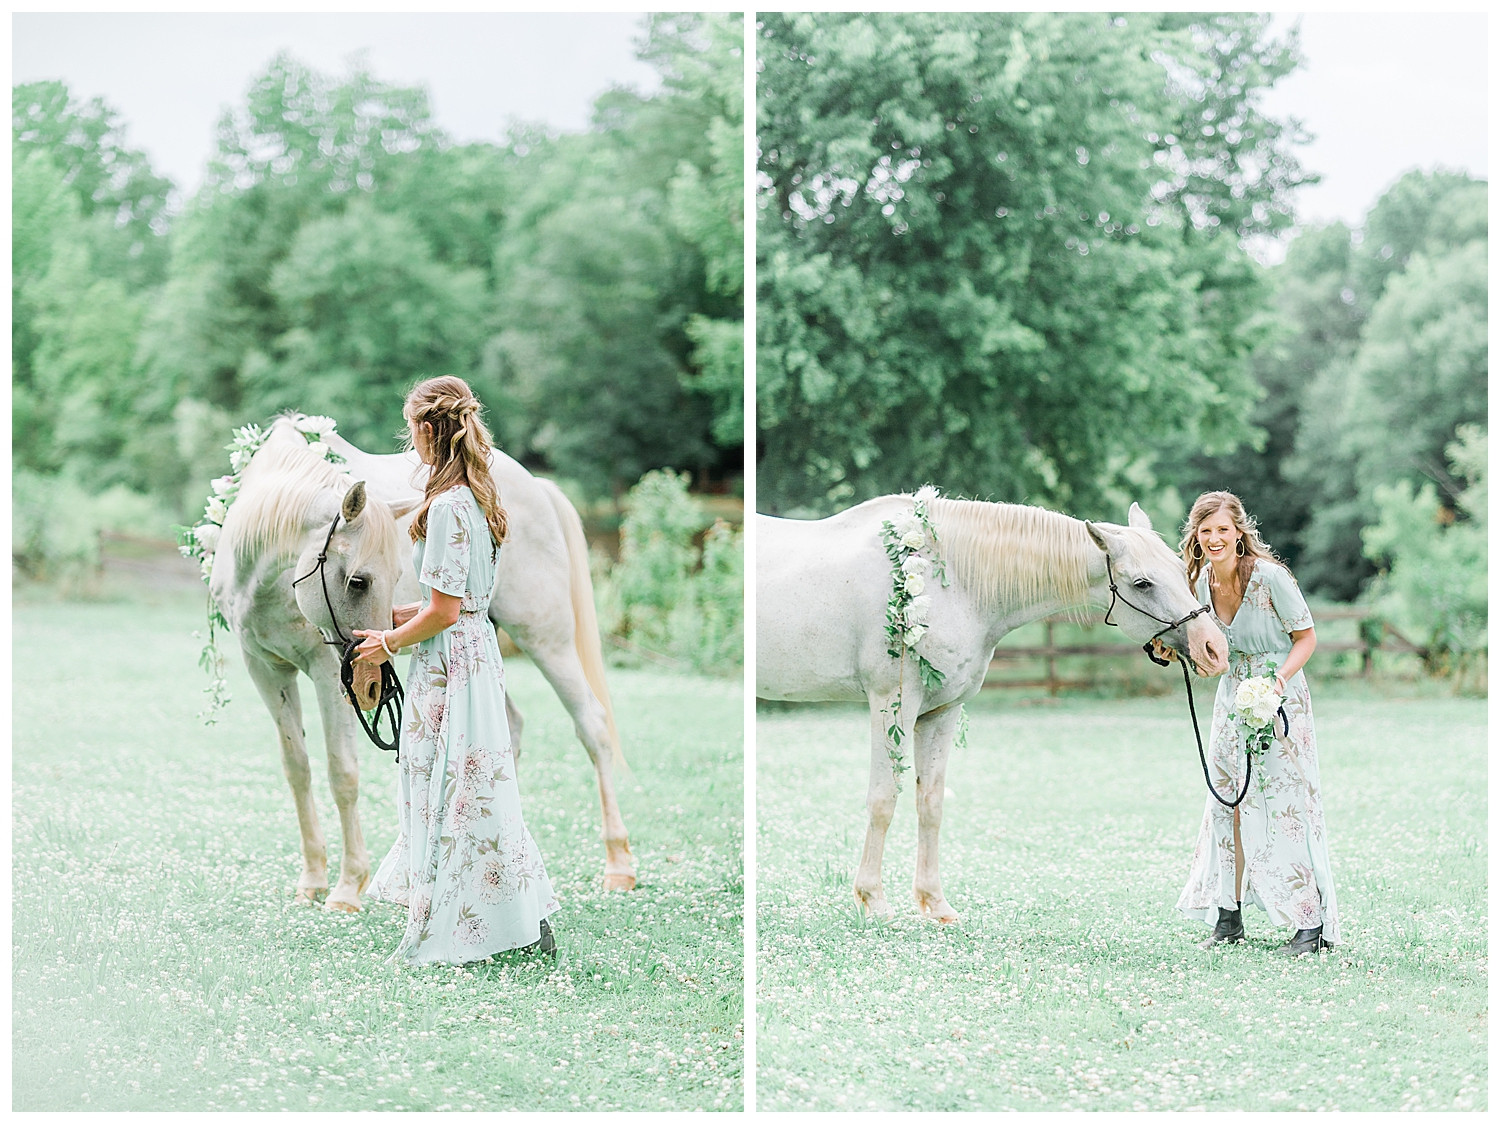 Styled Shoot with Horse in Macon, GA